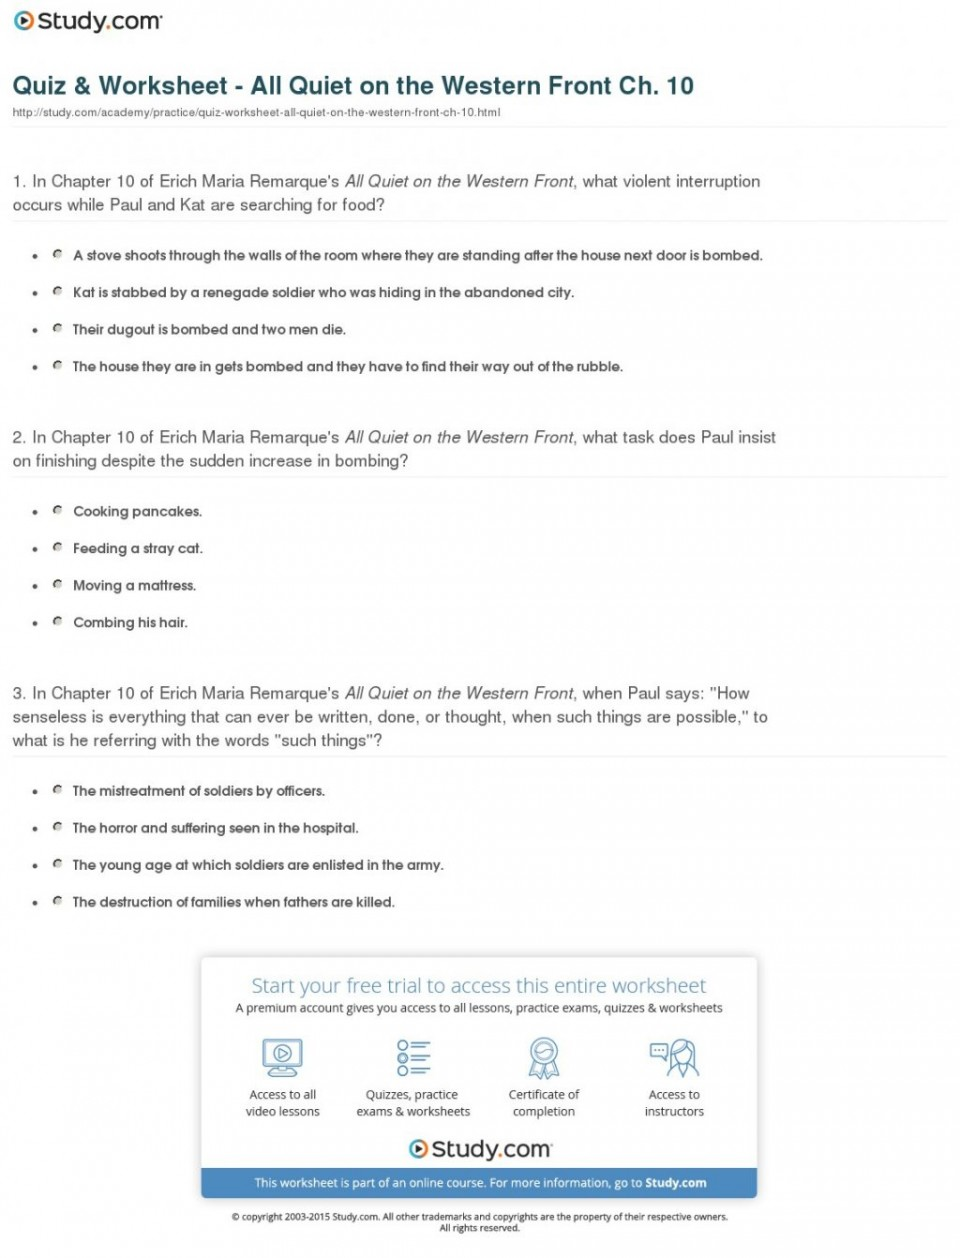 003 Quiz Worksheet All Quiet On The Western Front Ch Essays Compare And Contrast Essay Writing Help Buy Your20 1024x1342 Frightening Questions Topics 960